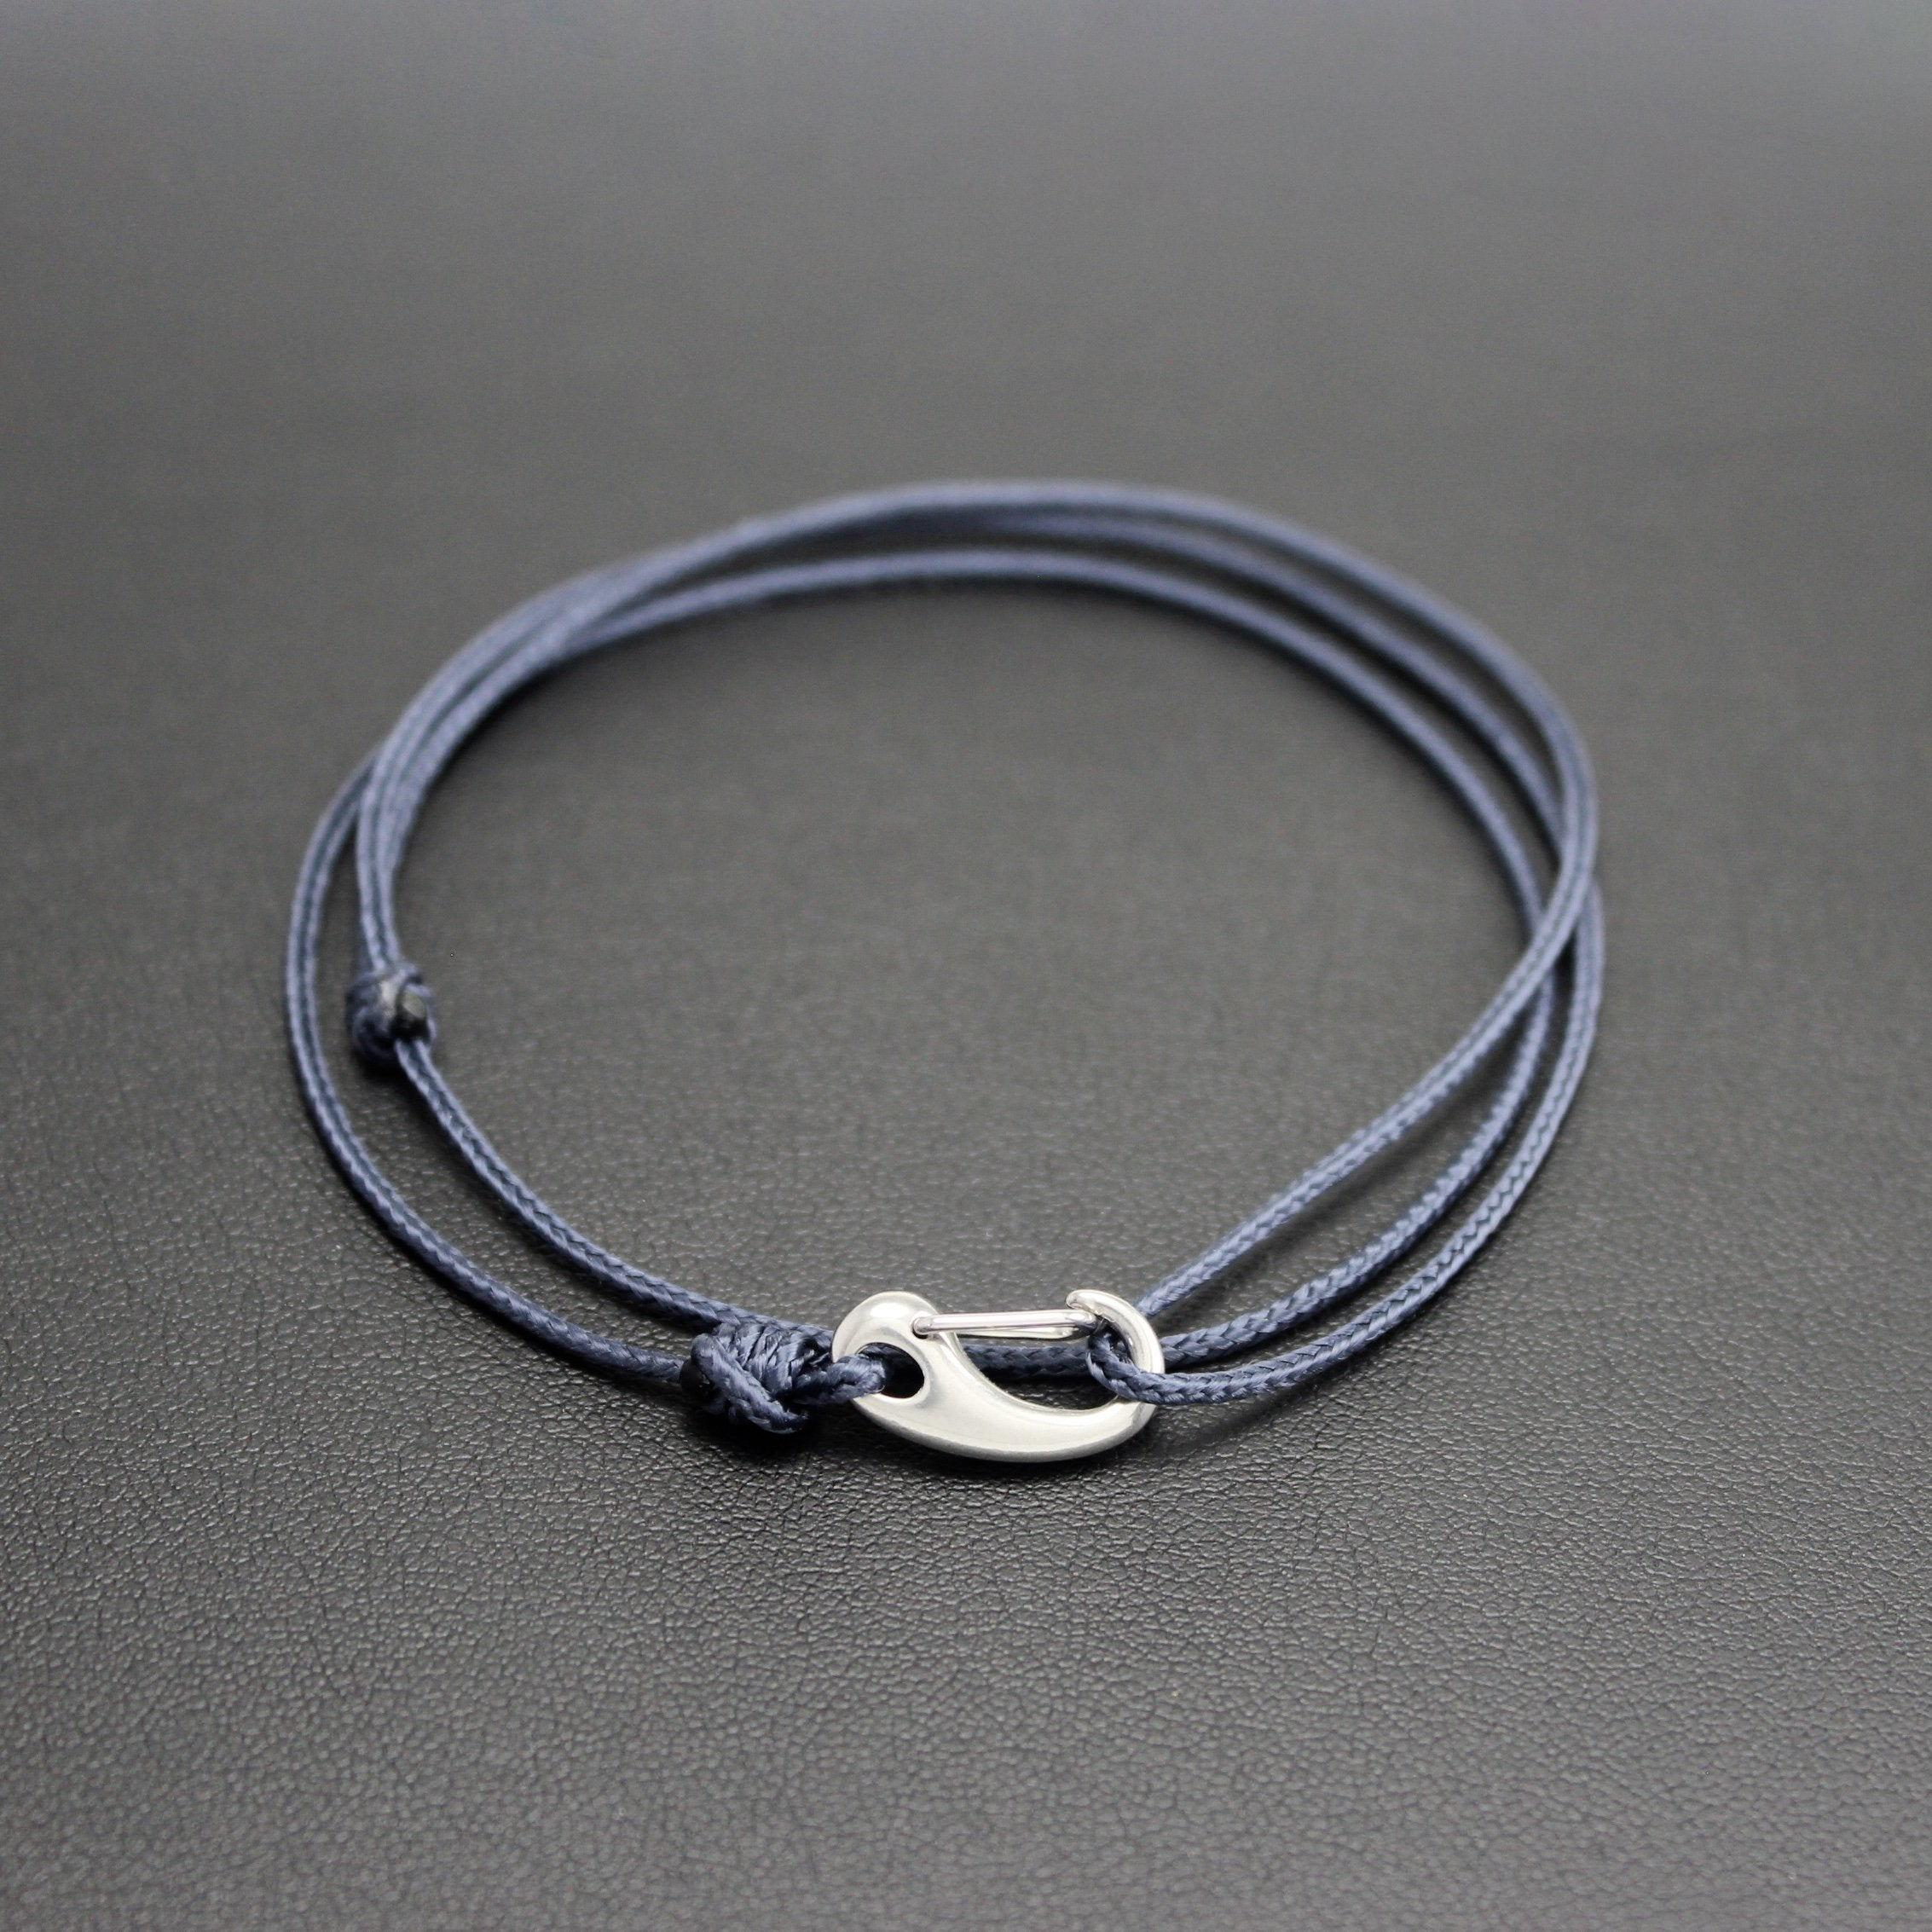 Men's Micro Cord Adjustable Bracelet in Navy